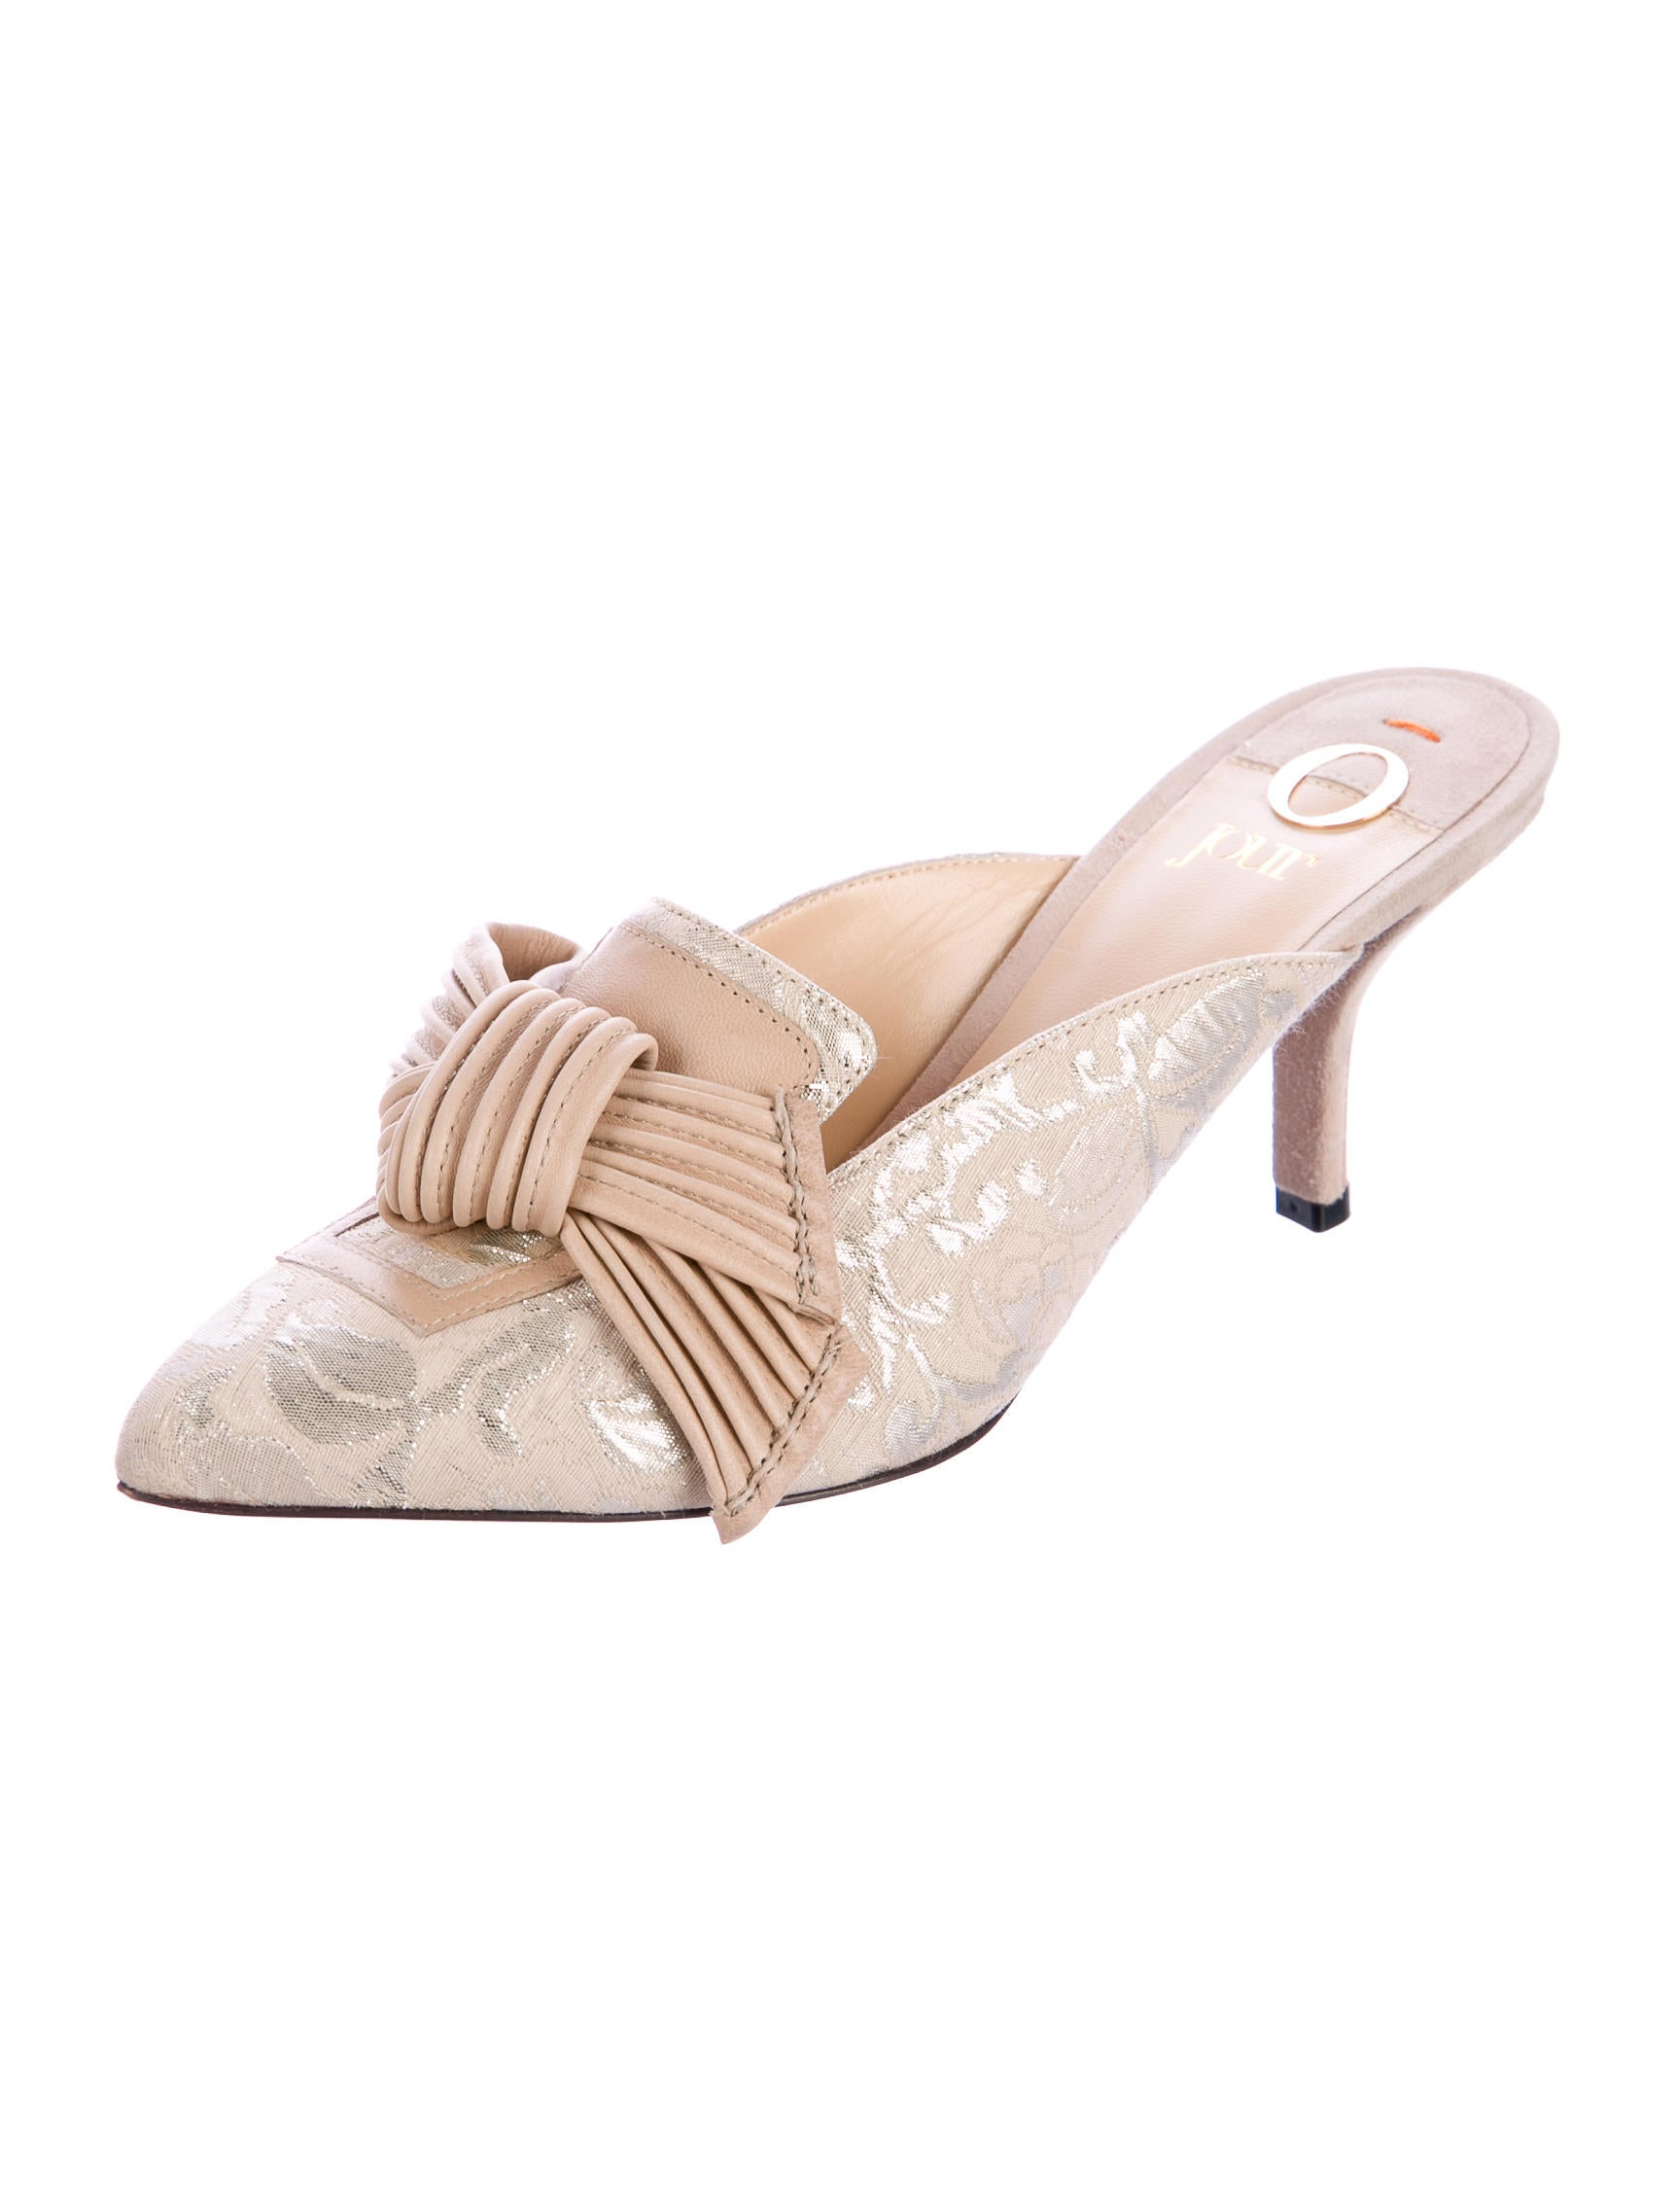 O Jour Cid Satin Mules cheapest price outlet new arrival latest for sale recommend dN5GDgpqIs